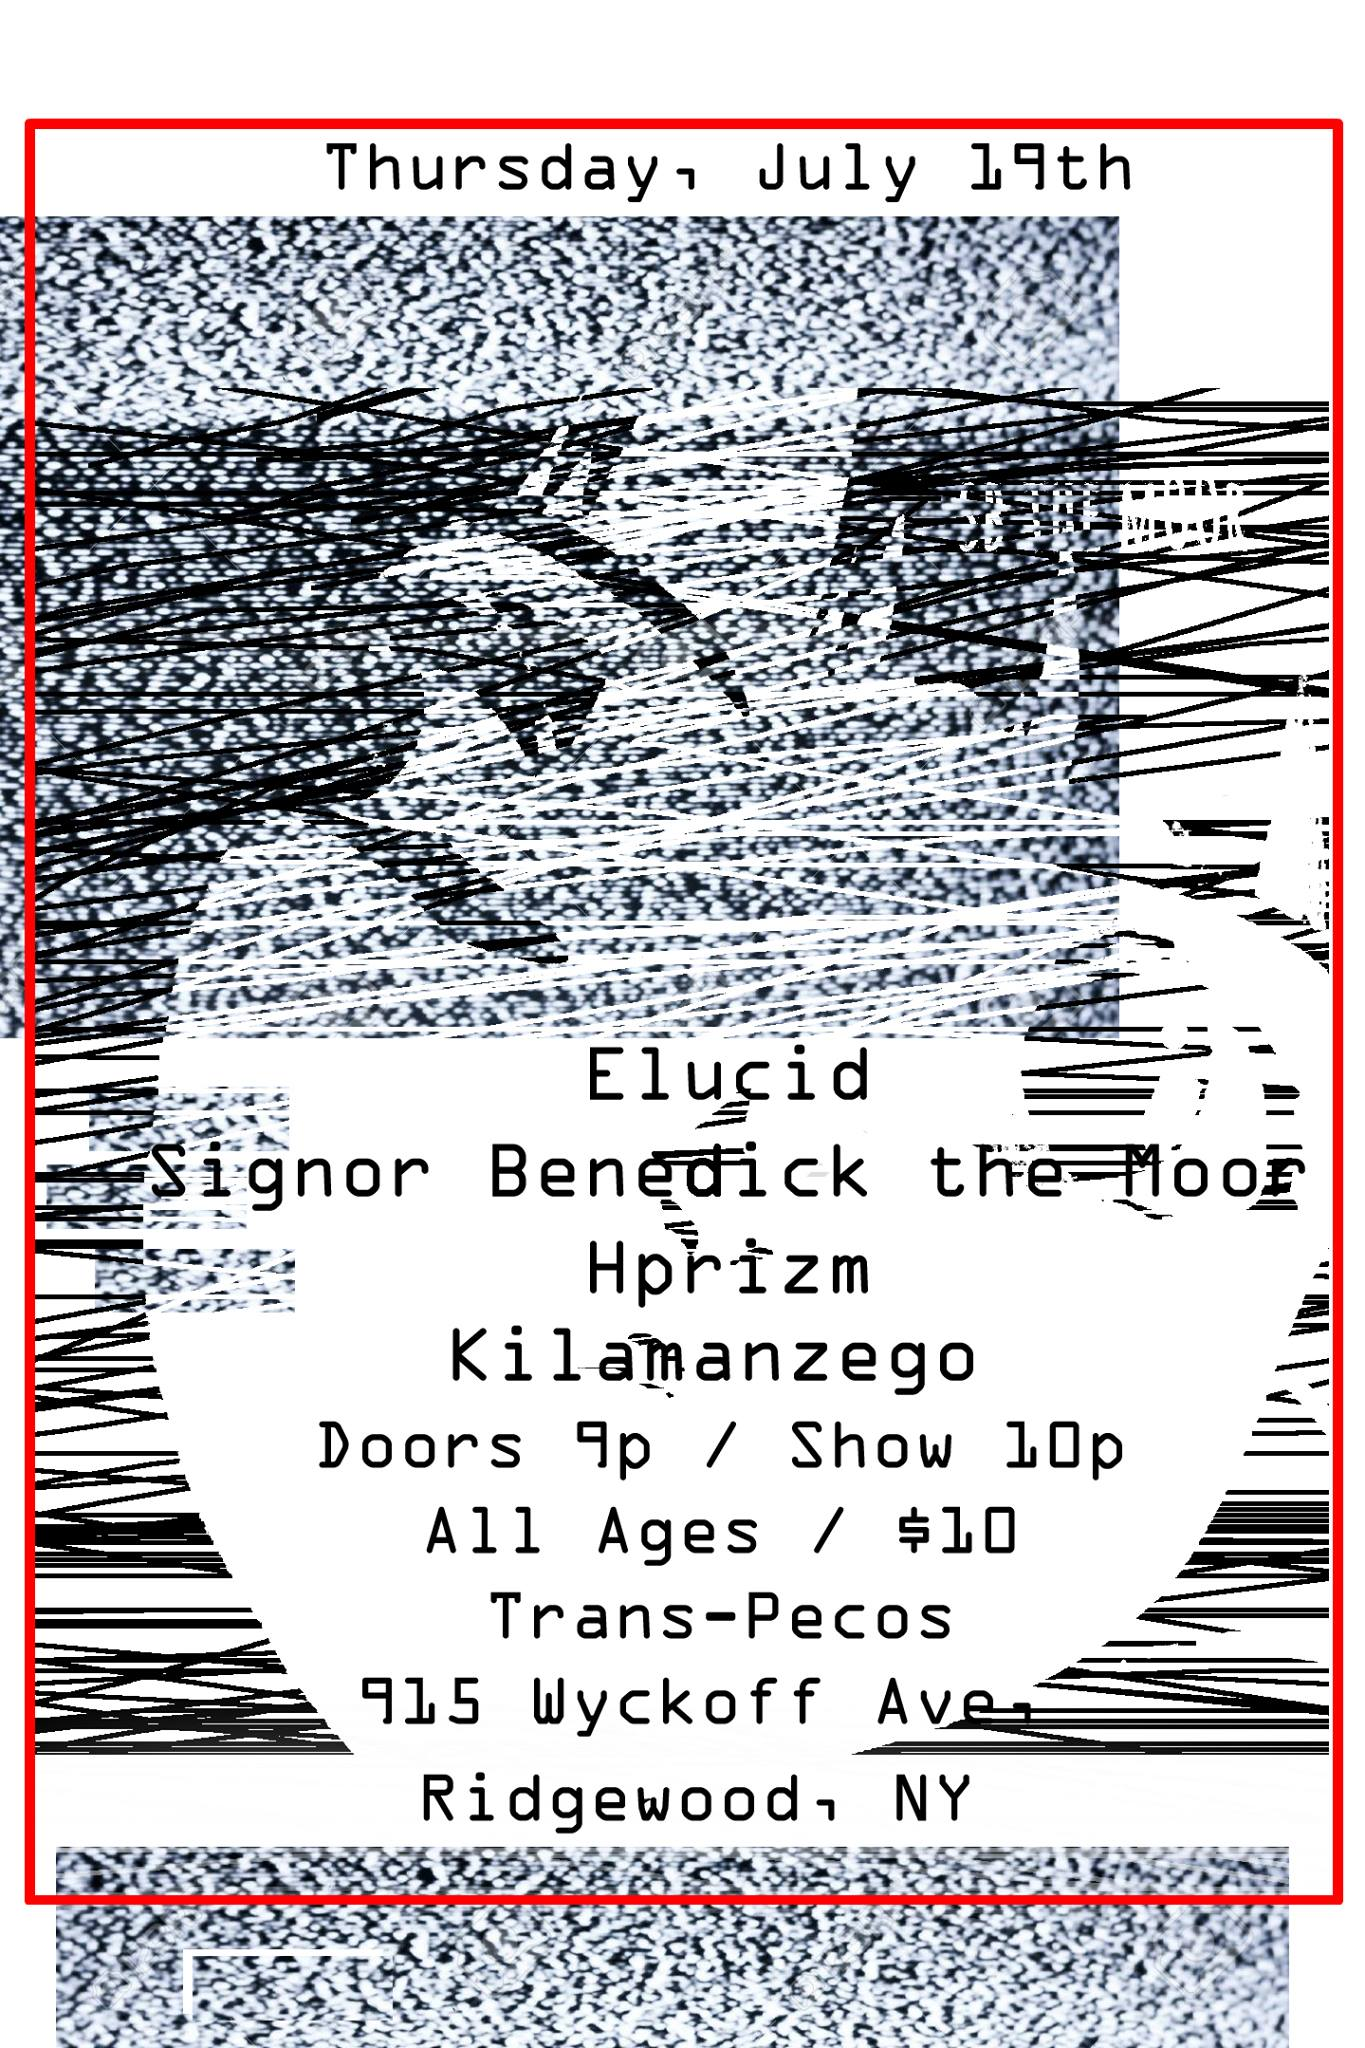 Signor Benedick the Moor is on tour and hits New York on July 19th with support from  Elucid from NY, Kilamanzego from Philly and  Hprizm/High Priest of Antipop Consortium!  ------- Music Links:  http://elucid.bandcamp.com/   https://hprizm.bandcamp.com/album/projections   https://sbthemoor.bandcamp.com/   https://kilamanzego.bandcamp.com/   ALL AGES / $10 at door / Show at 10pm Trans - Pecos: 915 Wyckoff Ave, Ridgewood, NY 11385